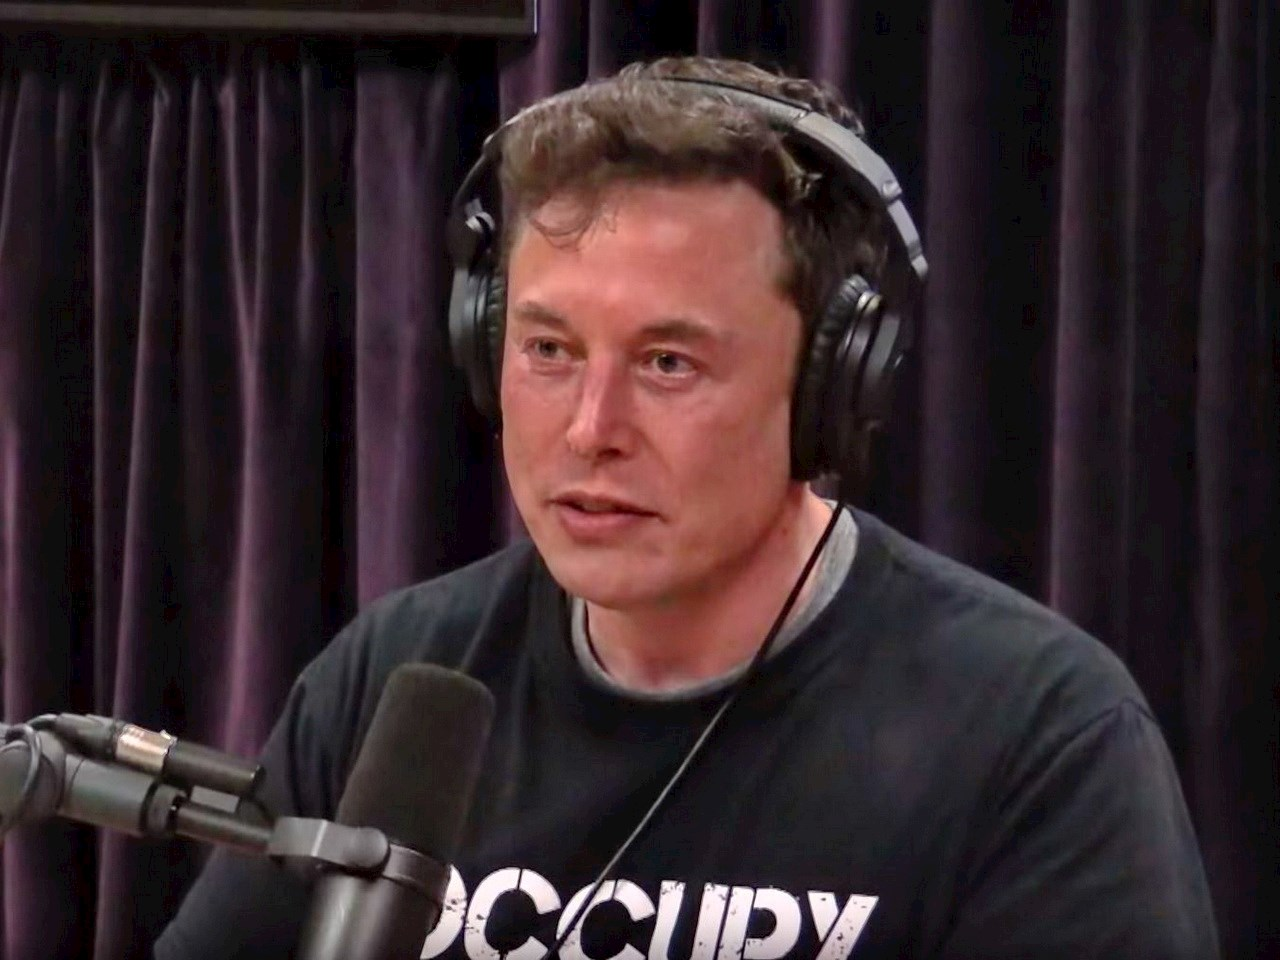 Elon Musk giving an interview at the Joe Rogan show